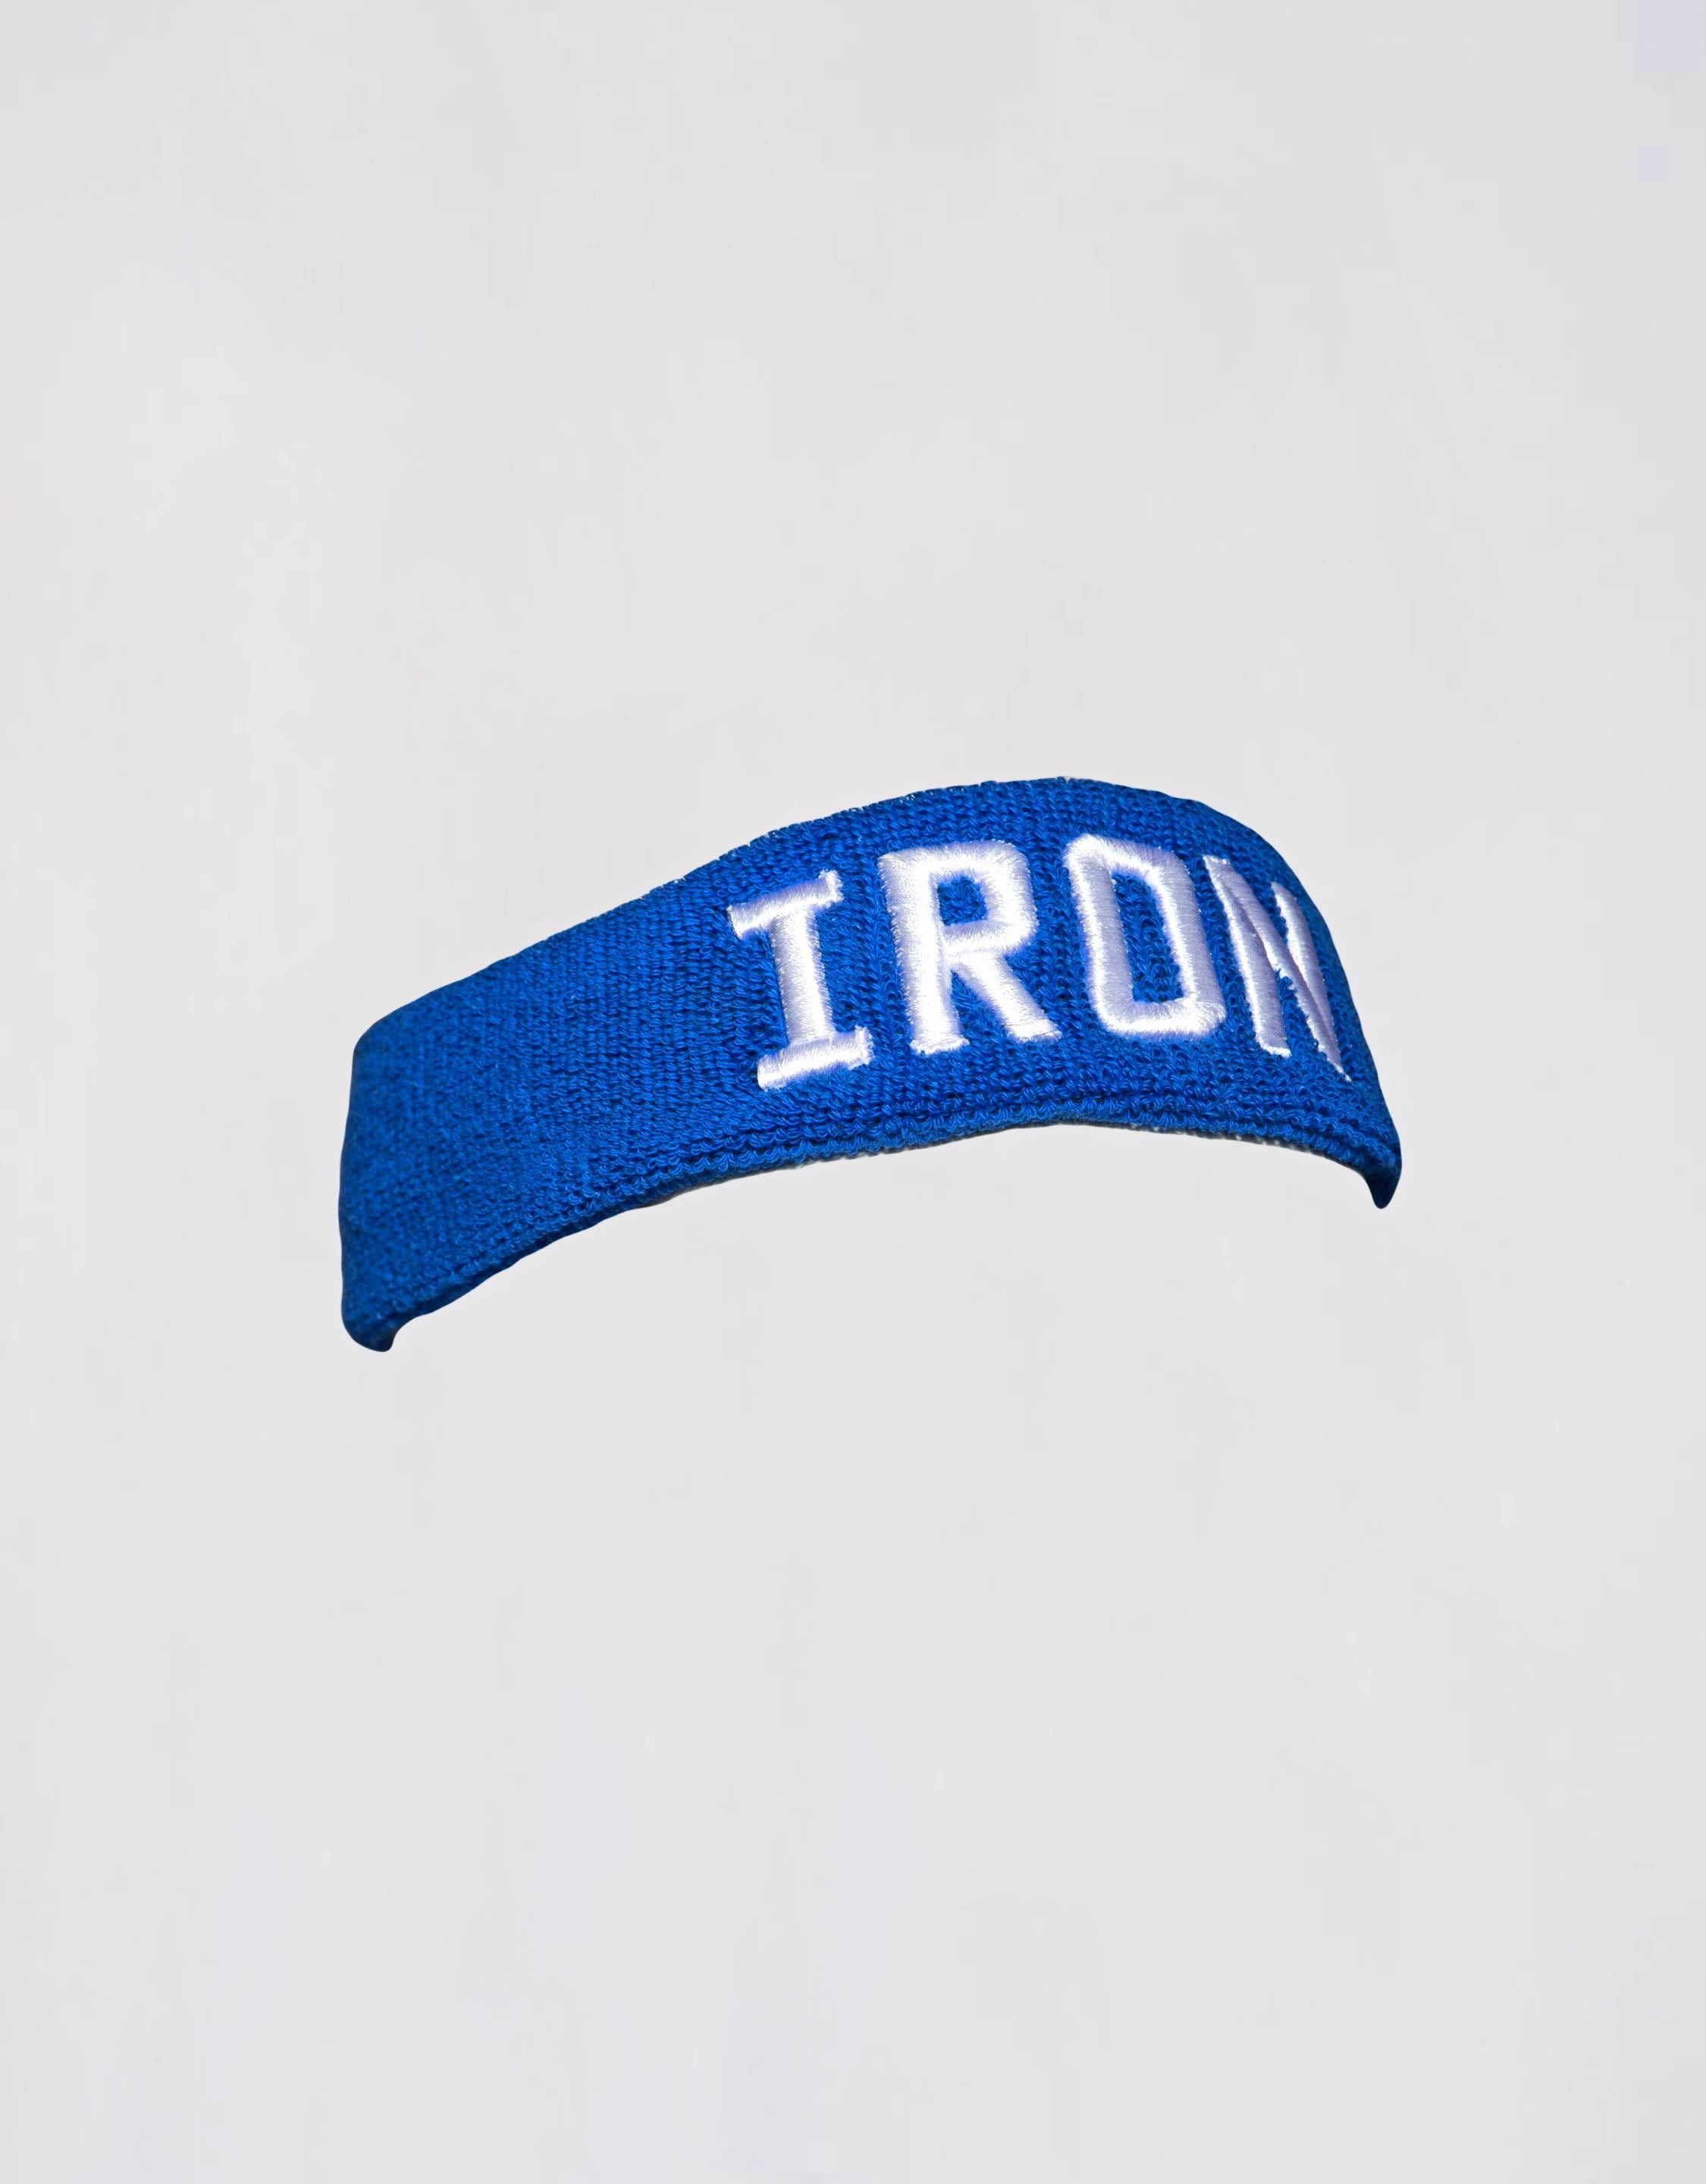 Iron Headband - Royal Blue - Hat